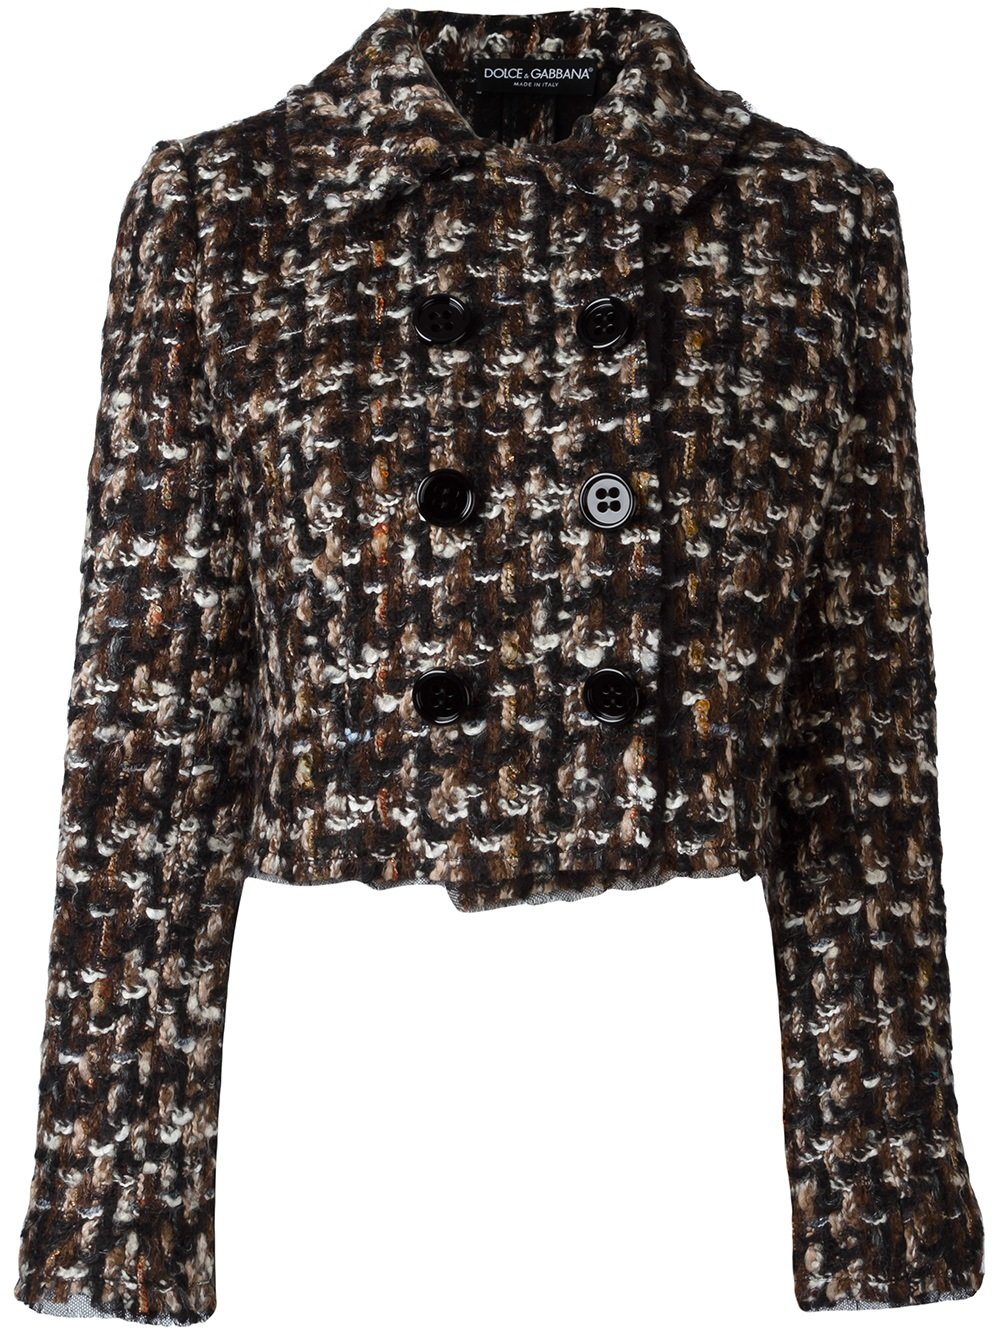 giacca in tweed in misto cotone e lana mohair DOLCE & GABBANA | Giacche | F28M9T-FMME3MARRONE-NERO